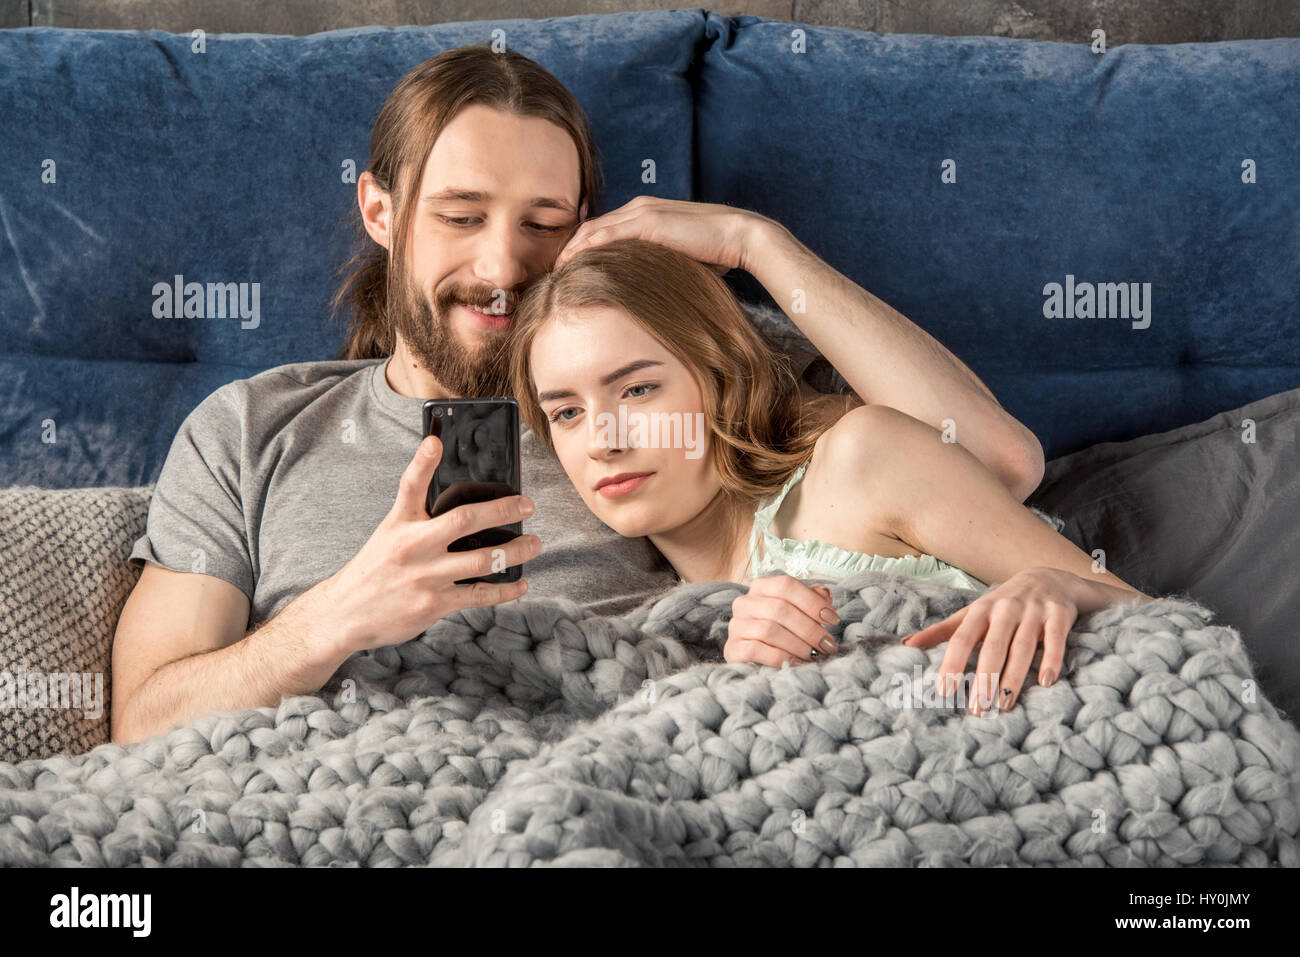 Young couple lying in bed and holding remote control - Stock Image